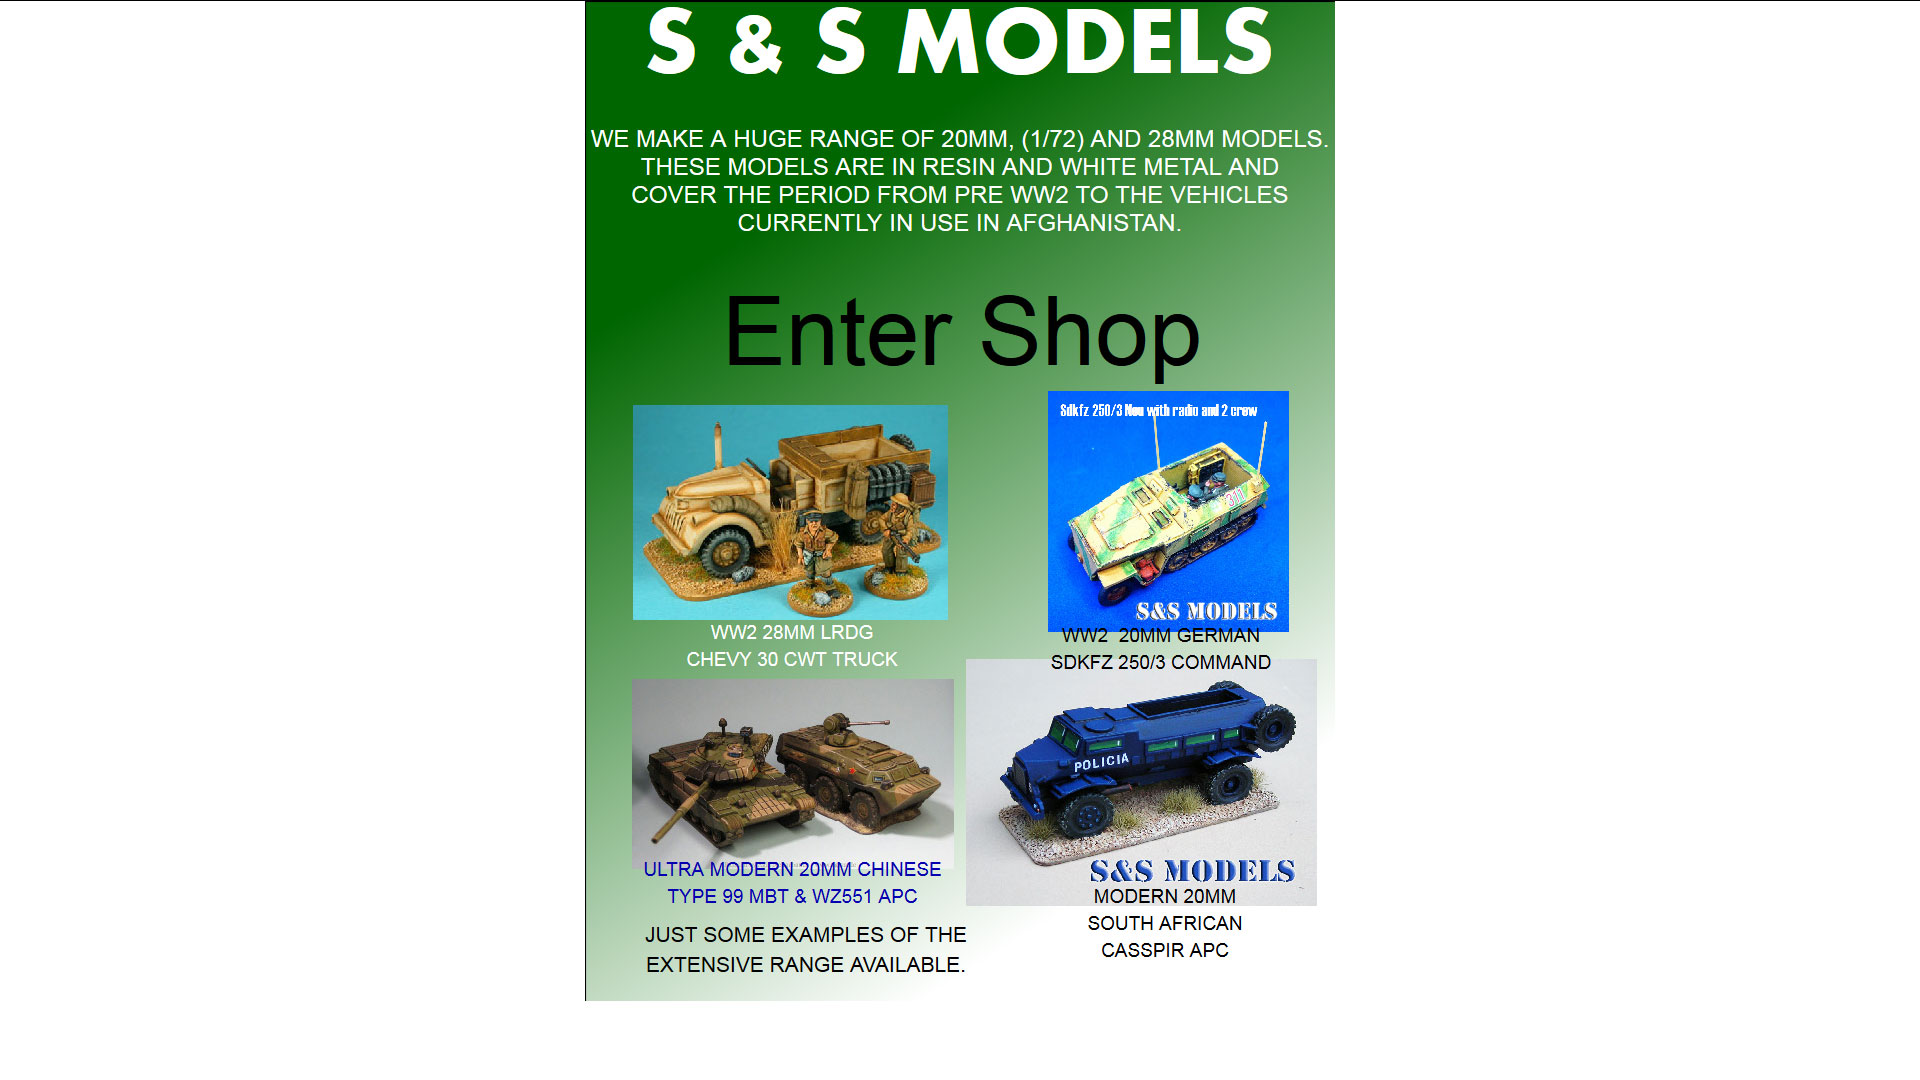 S and S Models